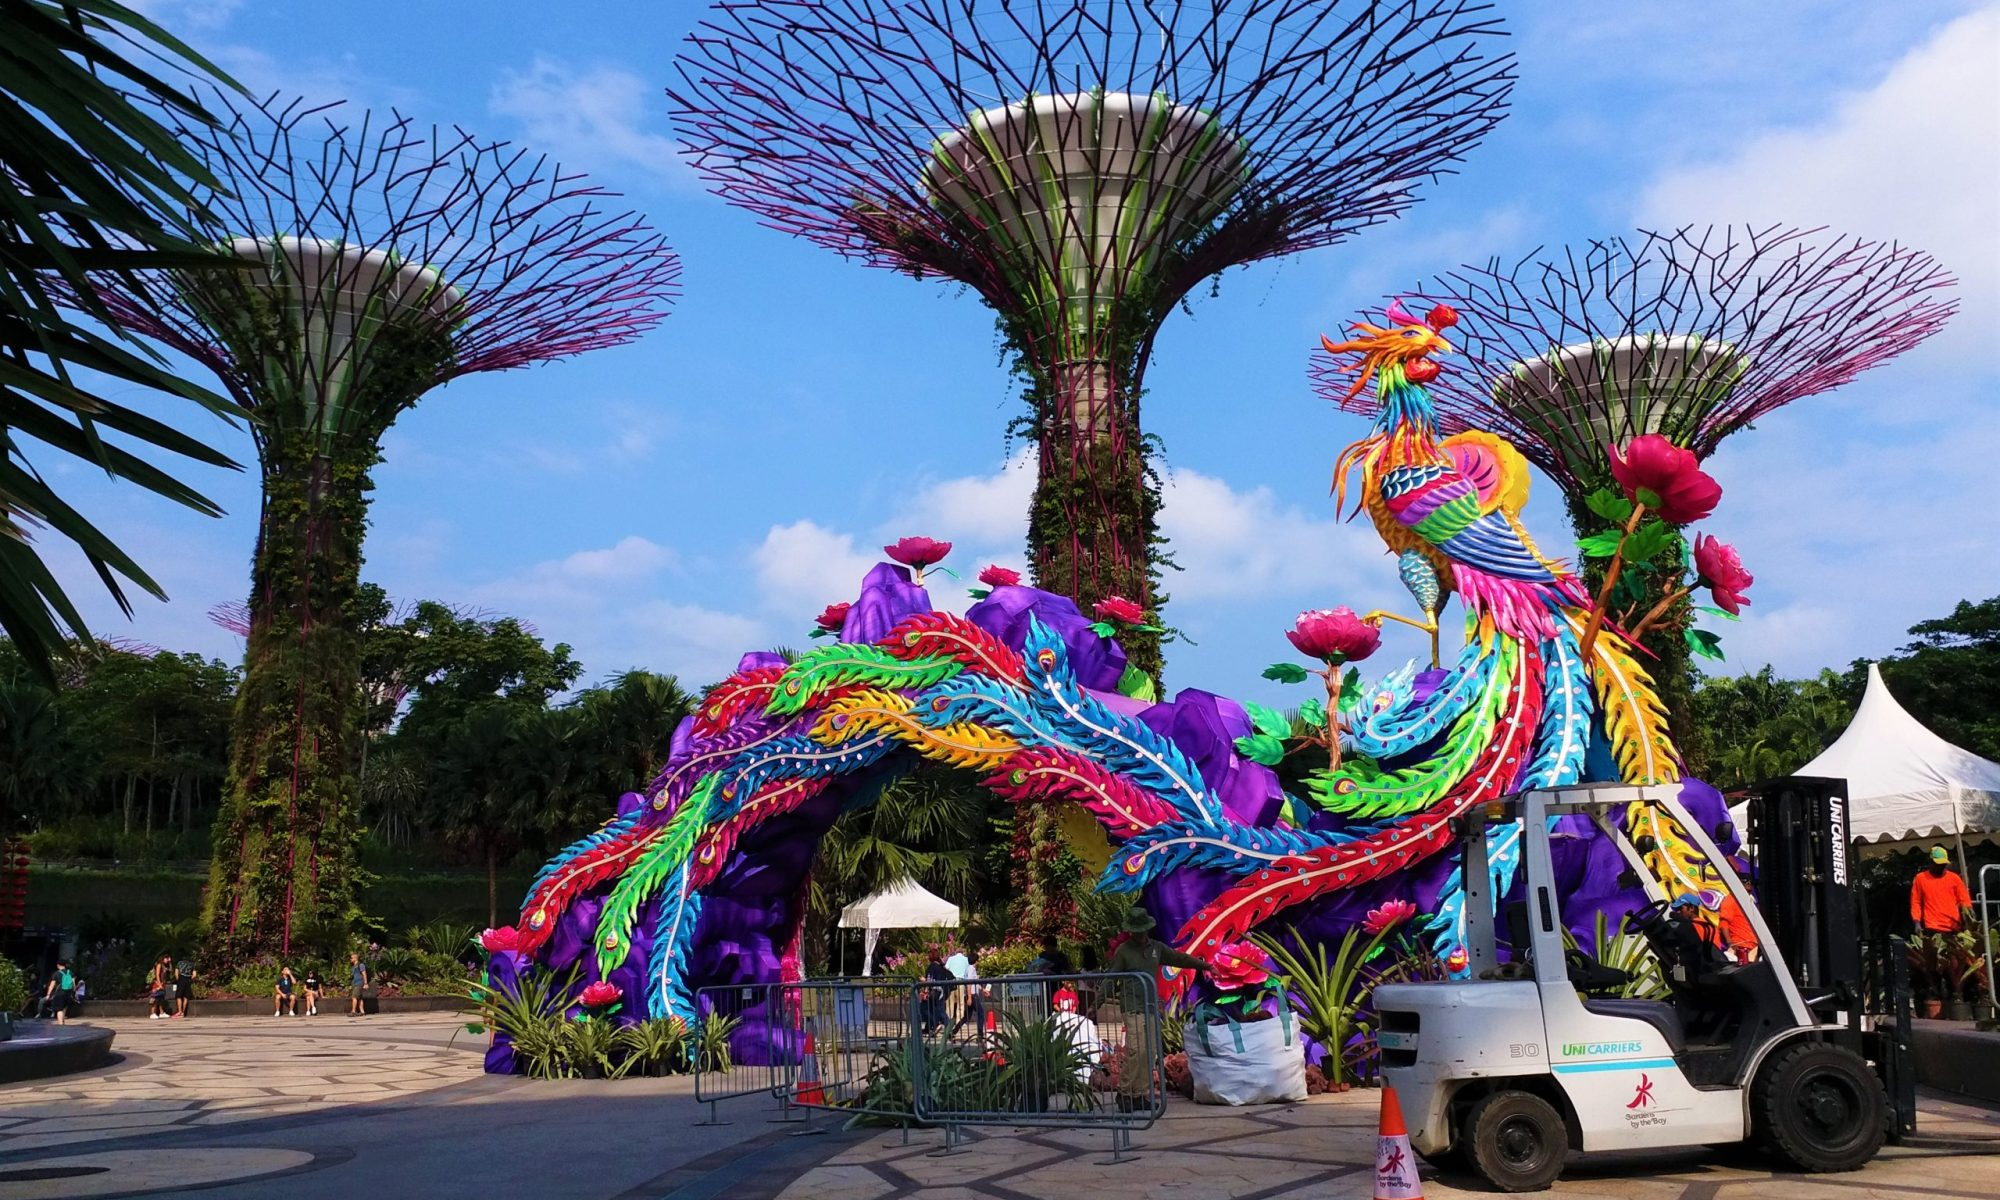 K in Motion Travel Blog. Petty Superheroes and Supertrees in Singapore. Bird and Supertrees at the Gardens By The Bay.